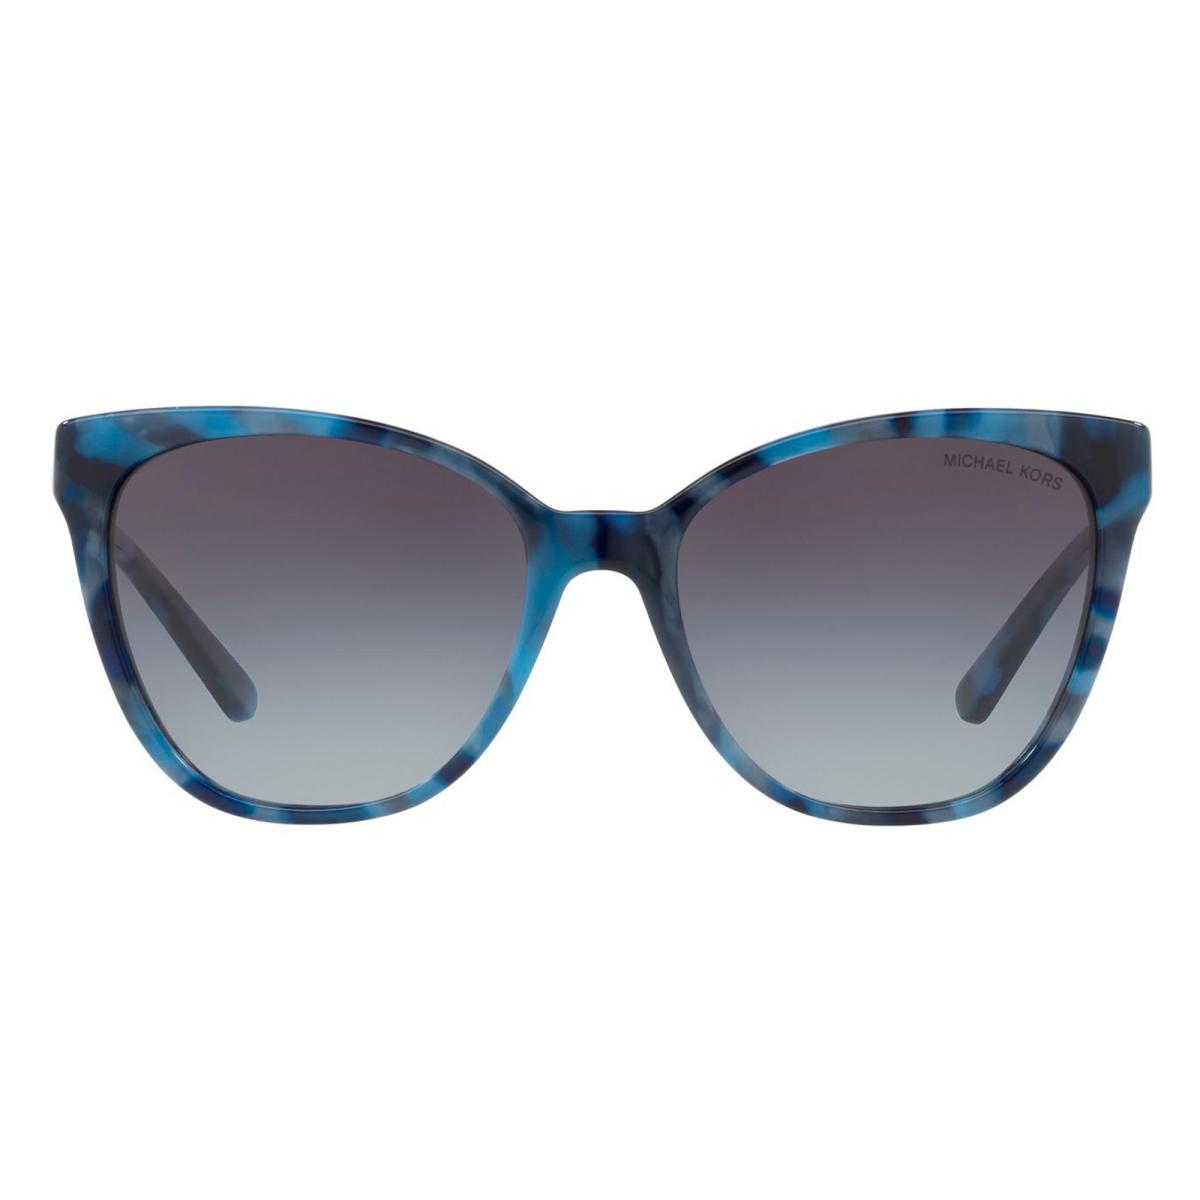 los Angeles 04aa2 9a854 Gafas Michael Kors - 0MK2058-33101155 - Mujer - Time Square